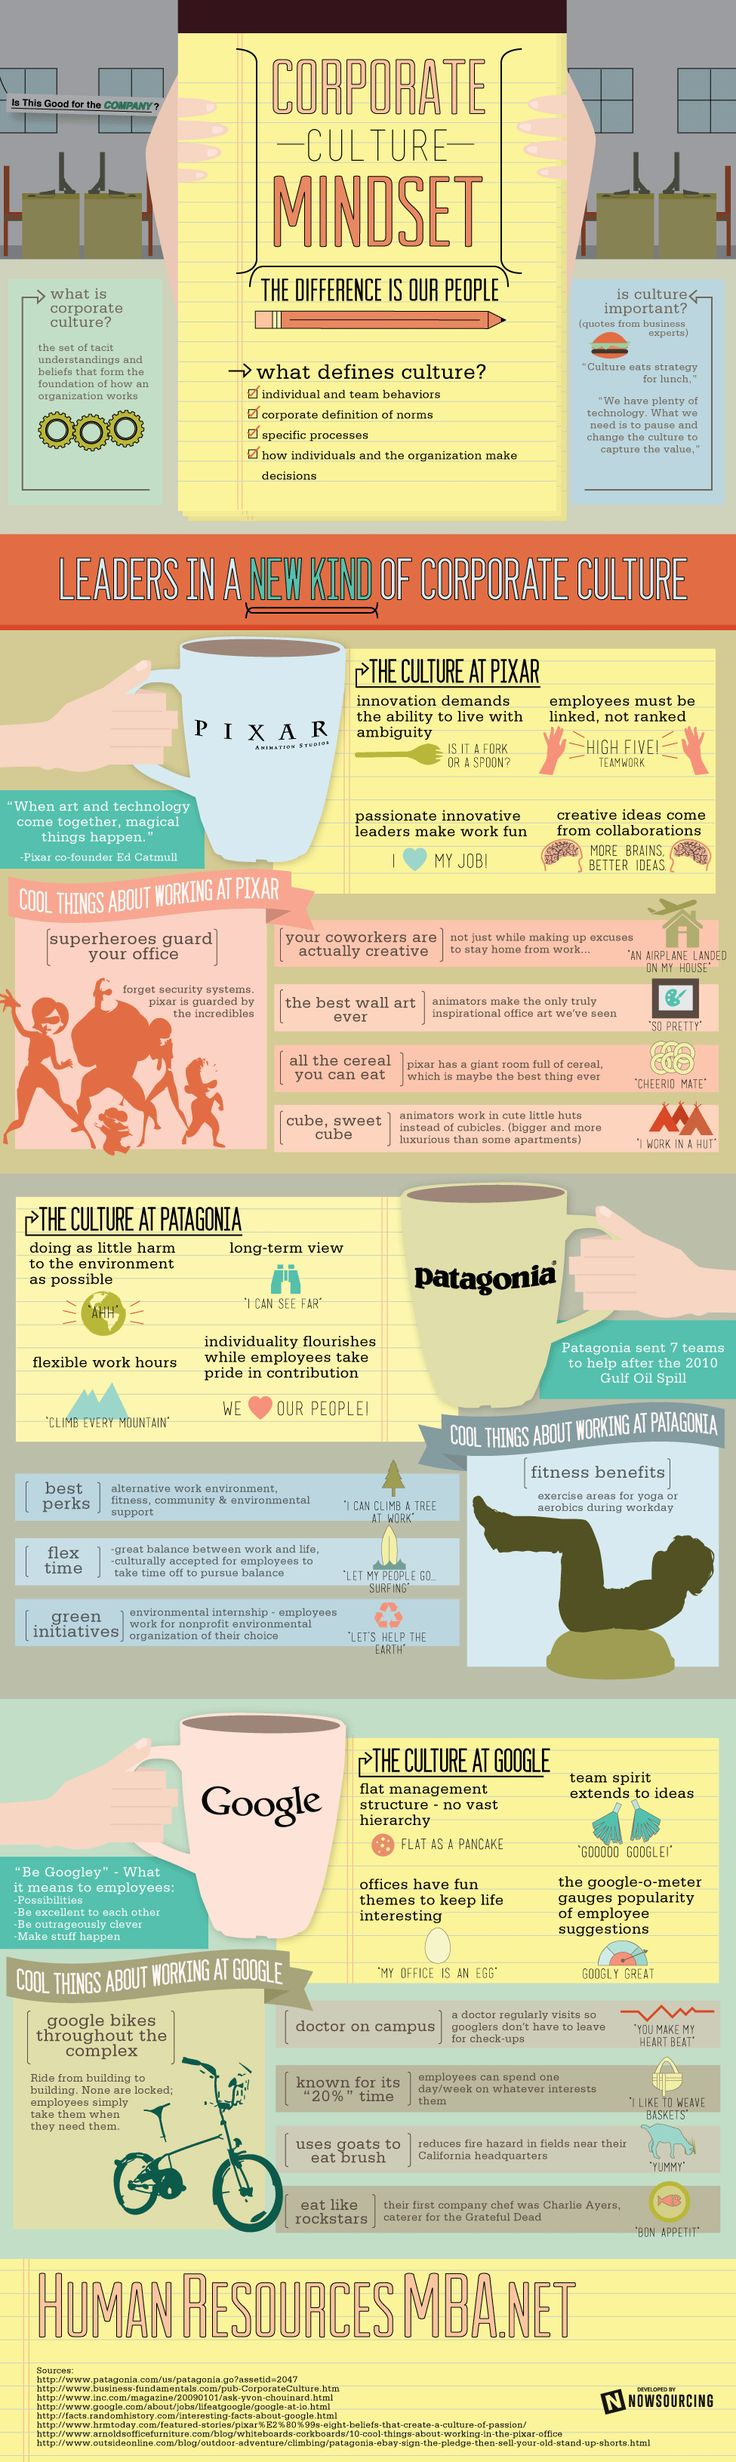 3 Companies That Do Culture Right and What You Can Learn From Them (Infographic)  www.entrepreneur.com/article/246768